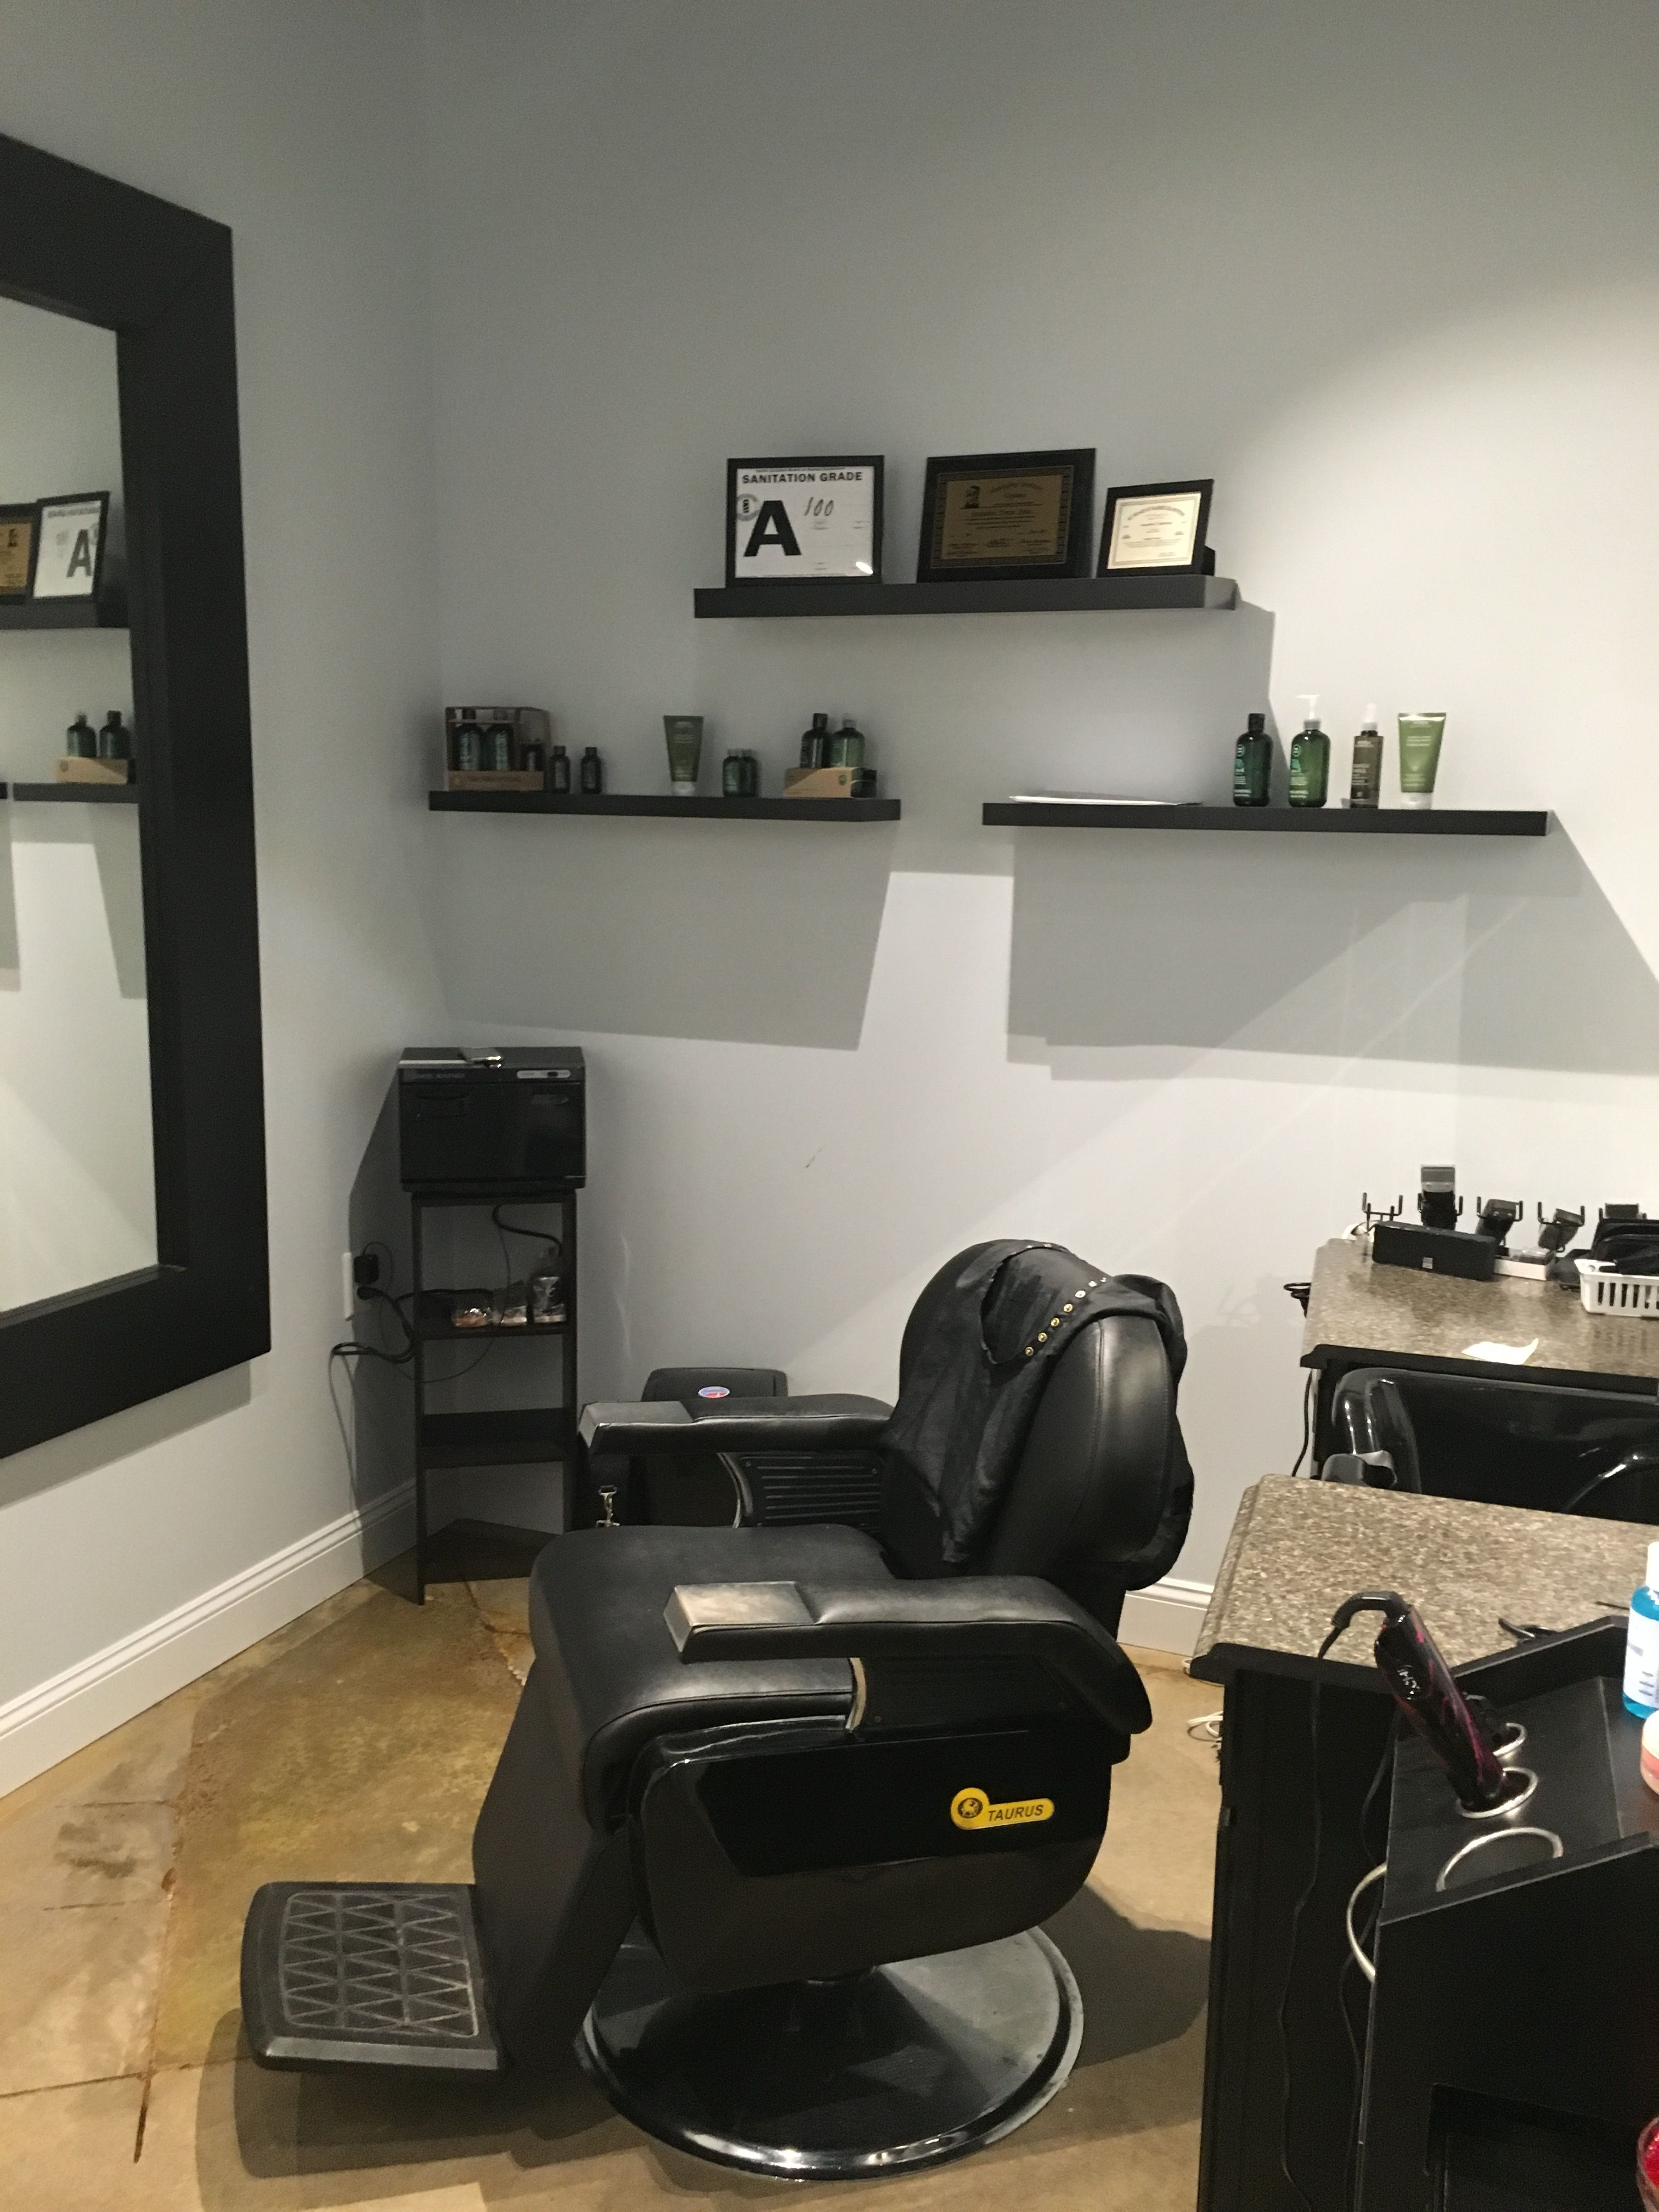 Suite 128 Barbersparadise Hairstyling Passions Beauty Inspire Salon Suites Decor Beauty Room Decor Barber Shop Decor